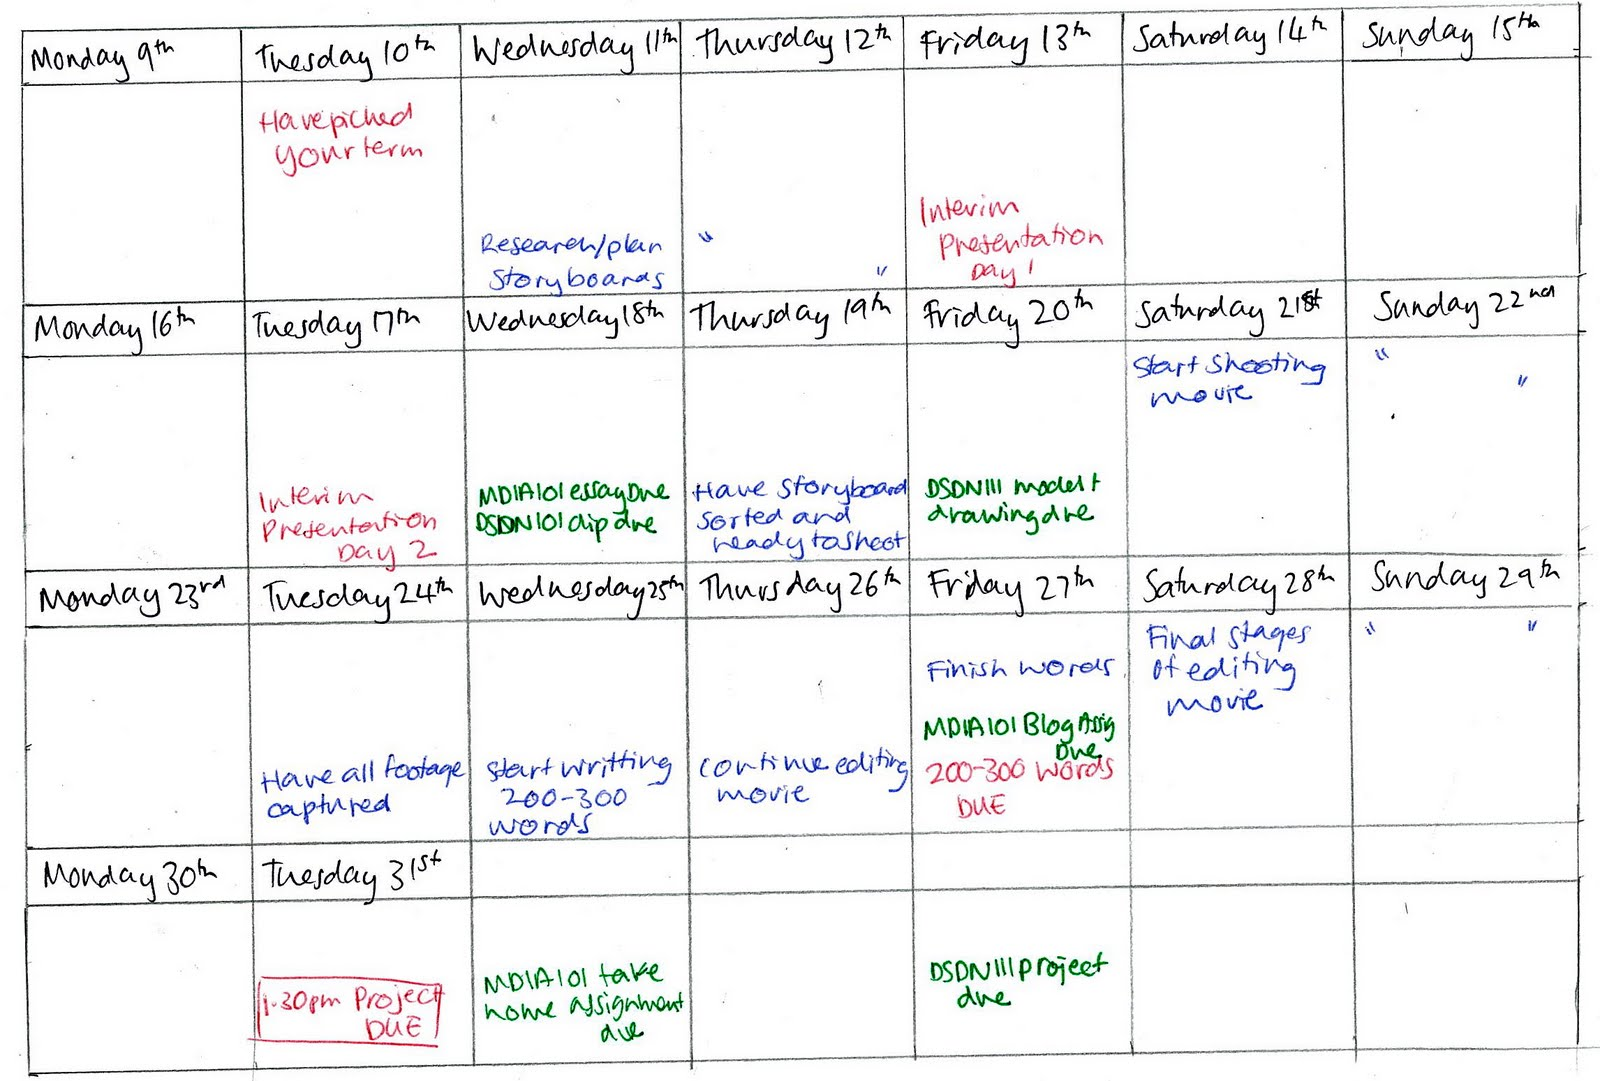 time management plan This video demonstrates how emailed requests for work are reviewed and time  estimated creating a calendar appointment for work that will.